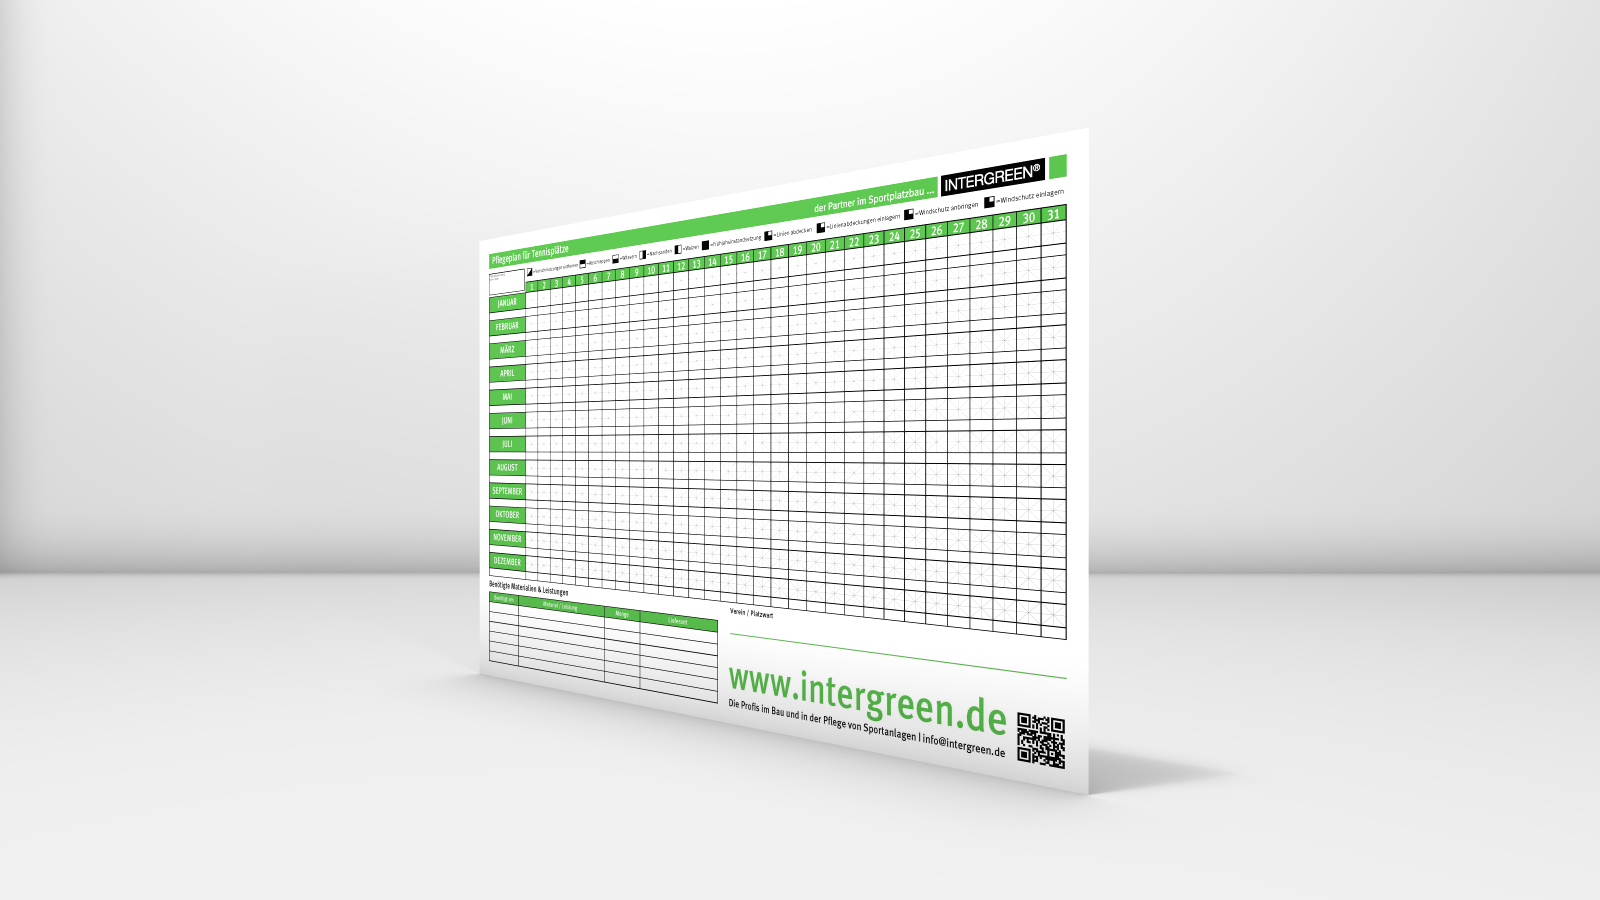 INTERGREEN BASIS WEB 20160129 001 Poster Pflegeplan Tennis